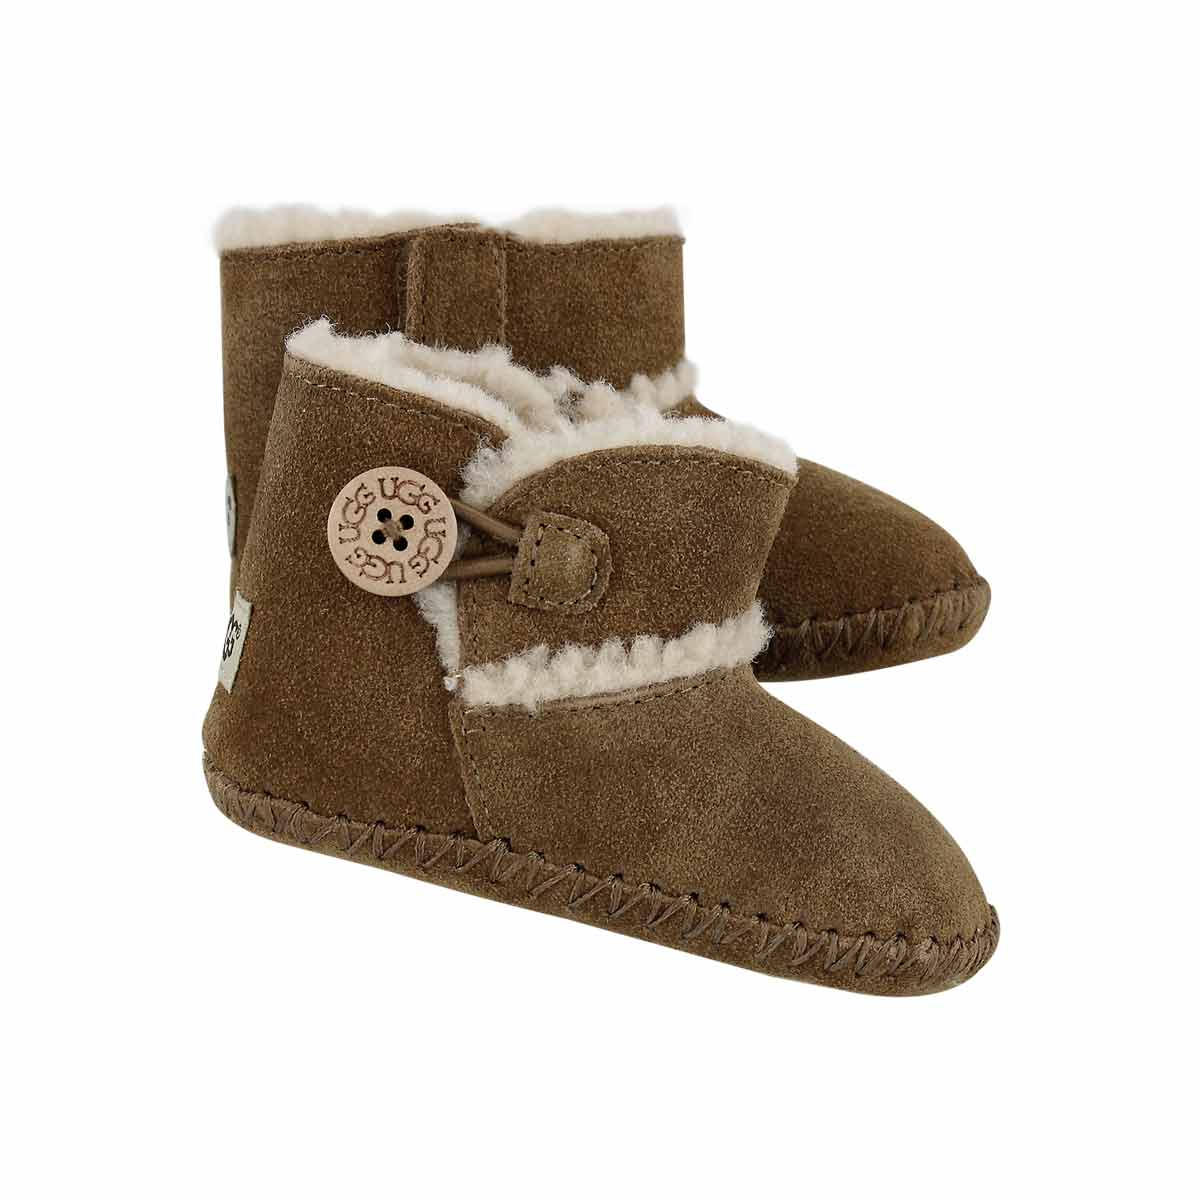 Inf-g Lemmy chestnut fashion boot